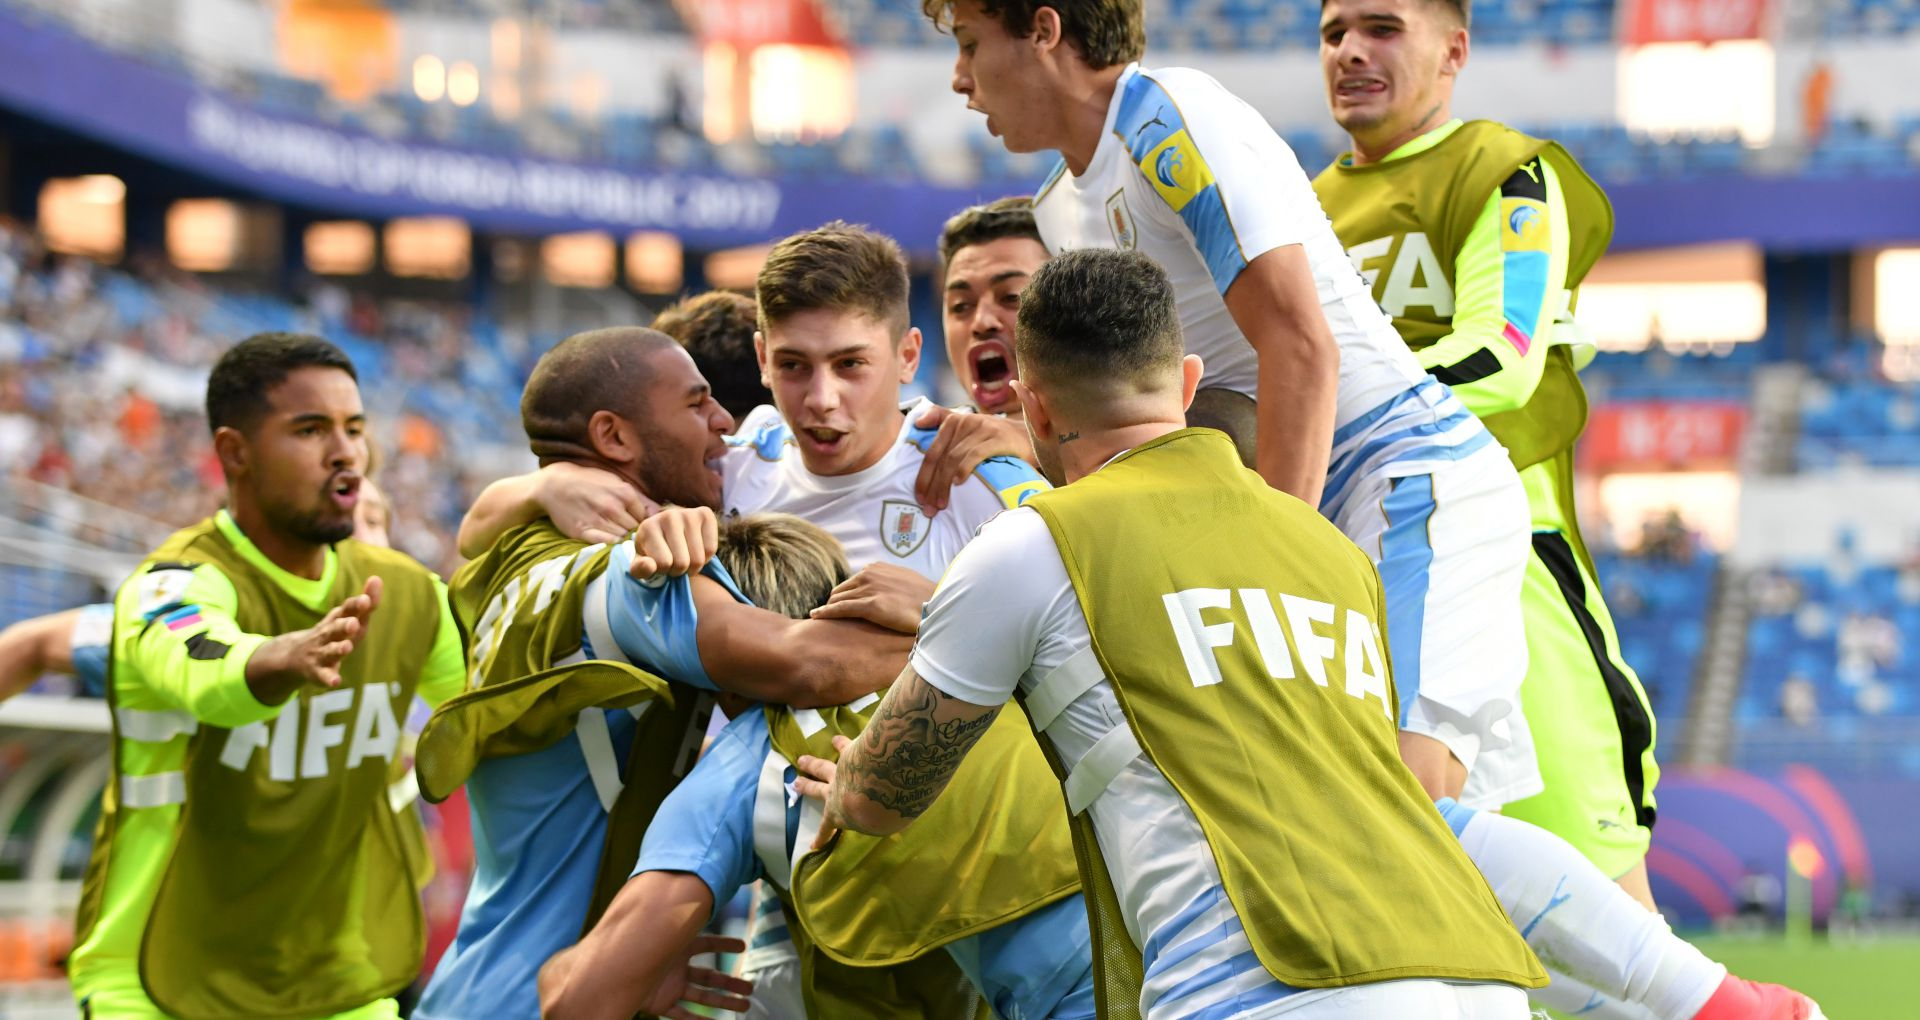 Mali the youngest, Portugal the oldest - the average age of every squad at Fifa U20 World Cup Poland 2019